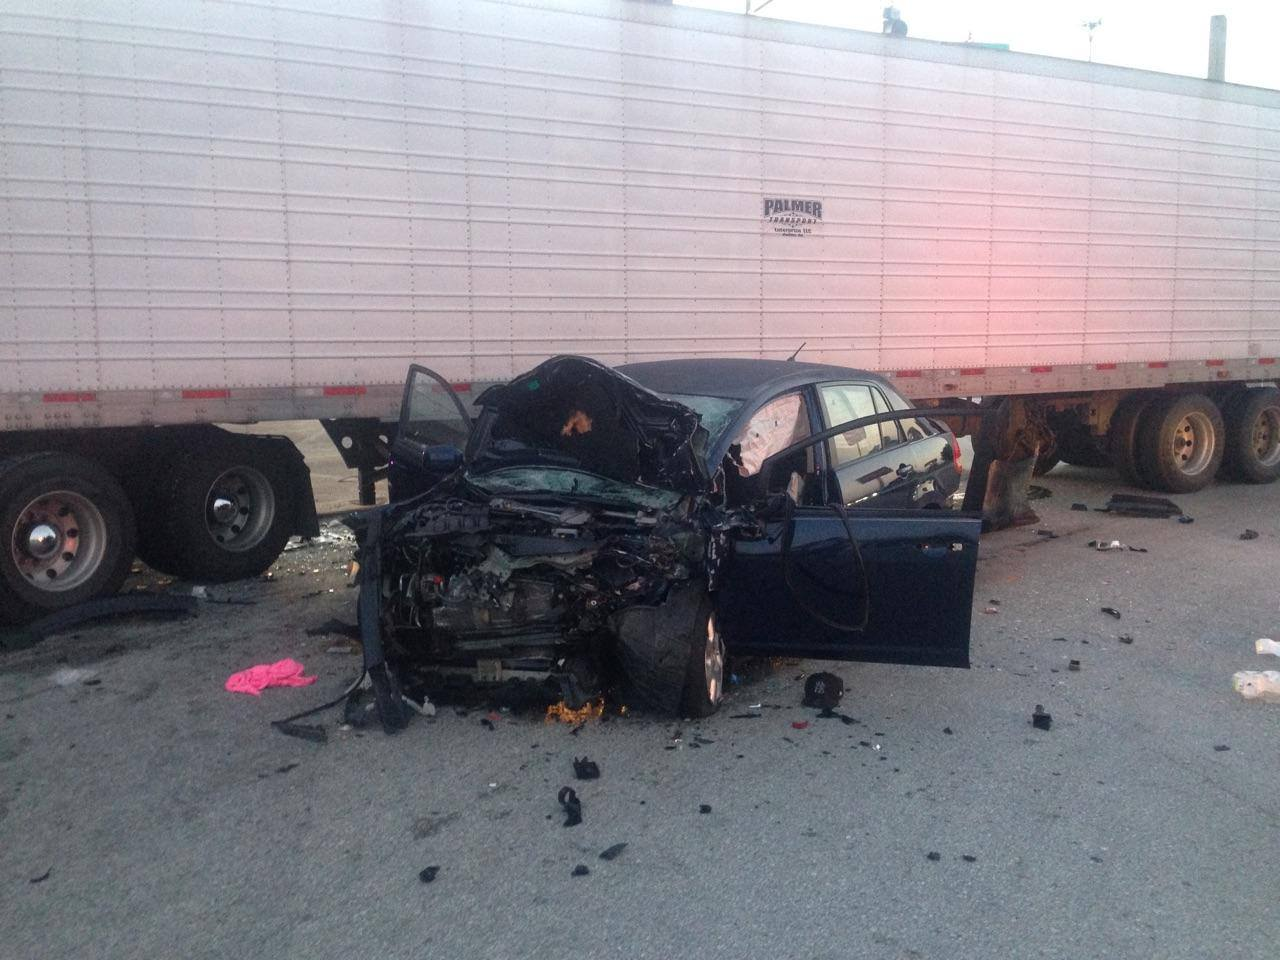 ocala news, marion county news, accident, car crash, semi, 484